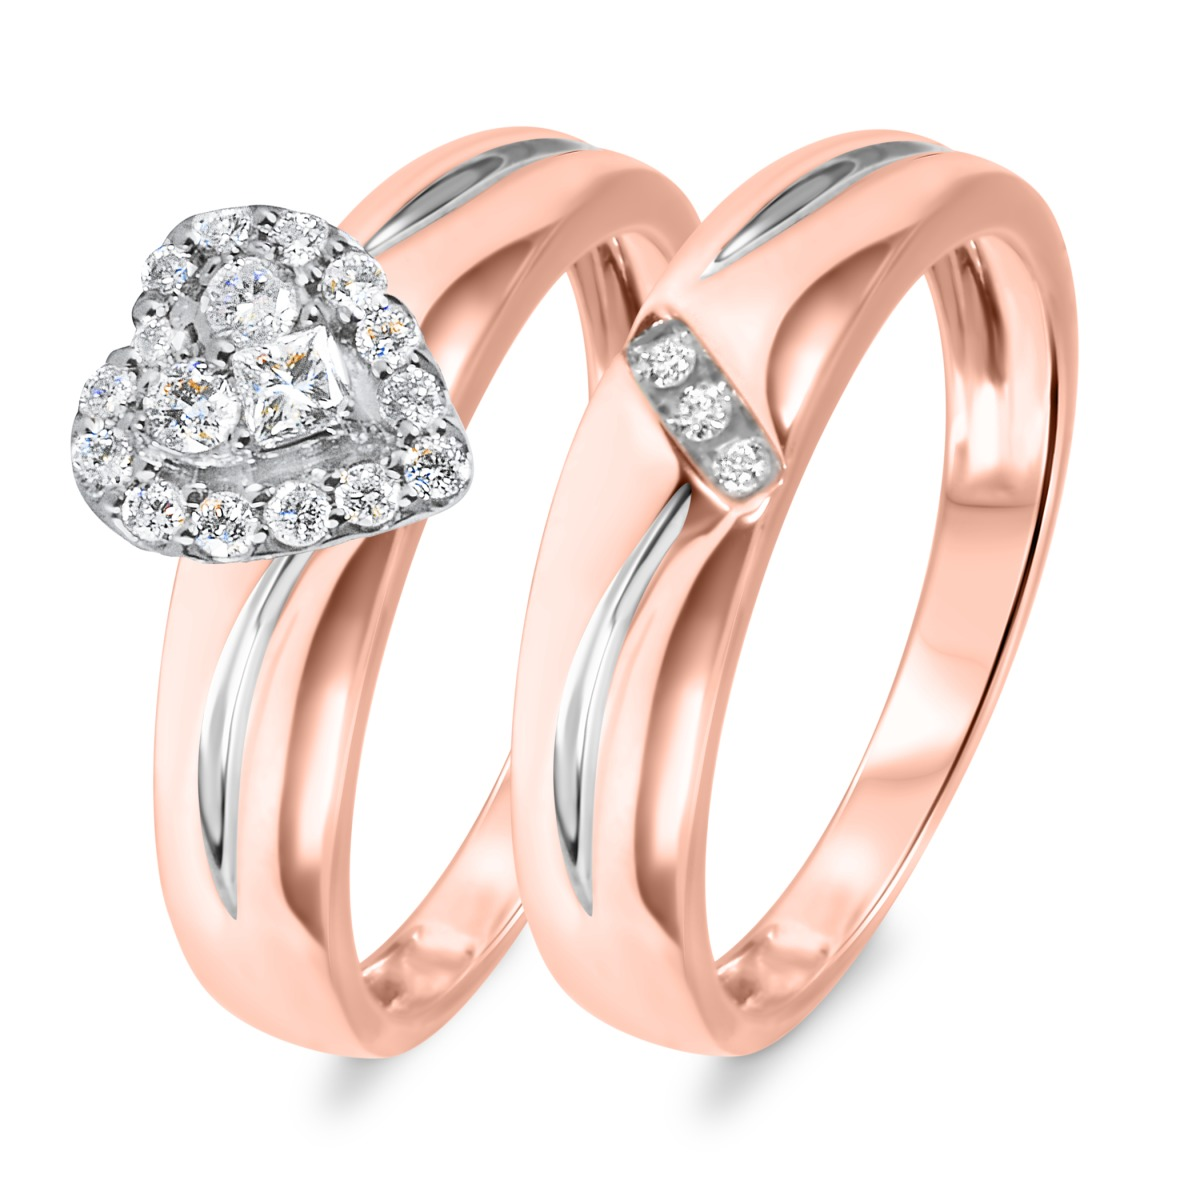 1/3 CT. T.W. Diamond Women's Bridal Wedding Ring Set 14K Rose Gold